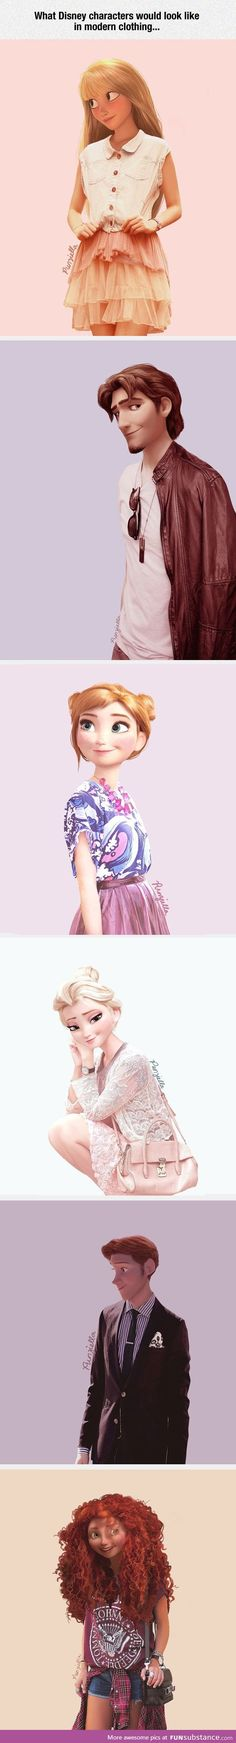 Disney characters in modern clothes - you can't help but smile :)